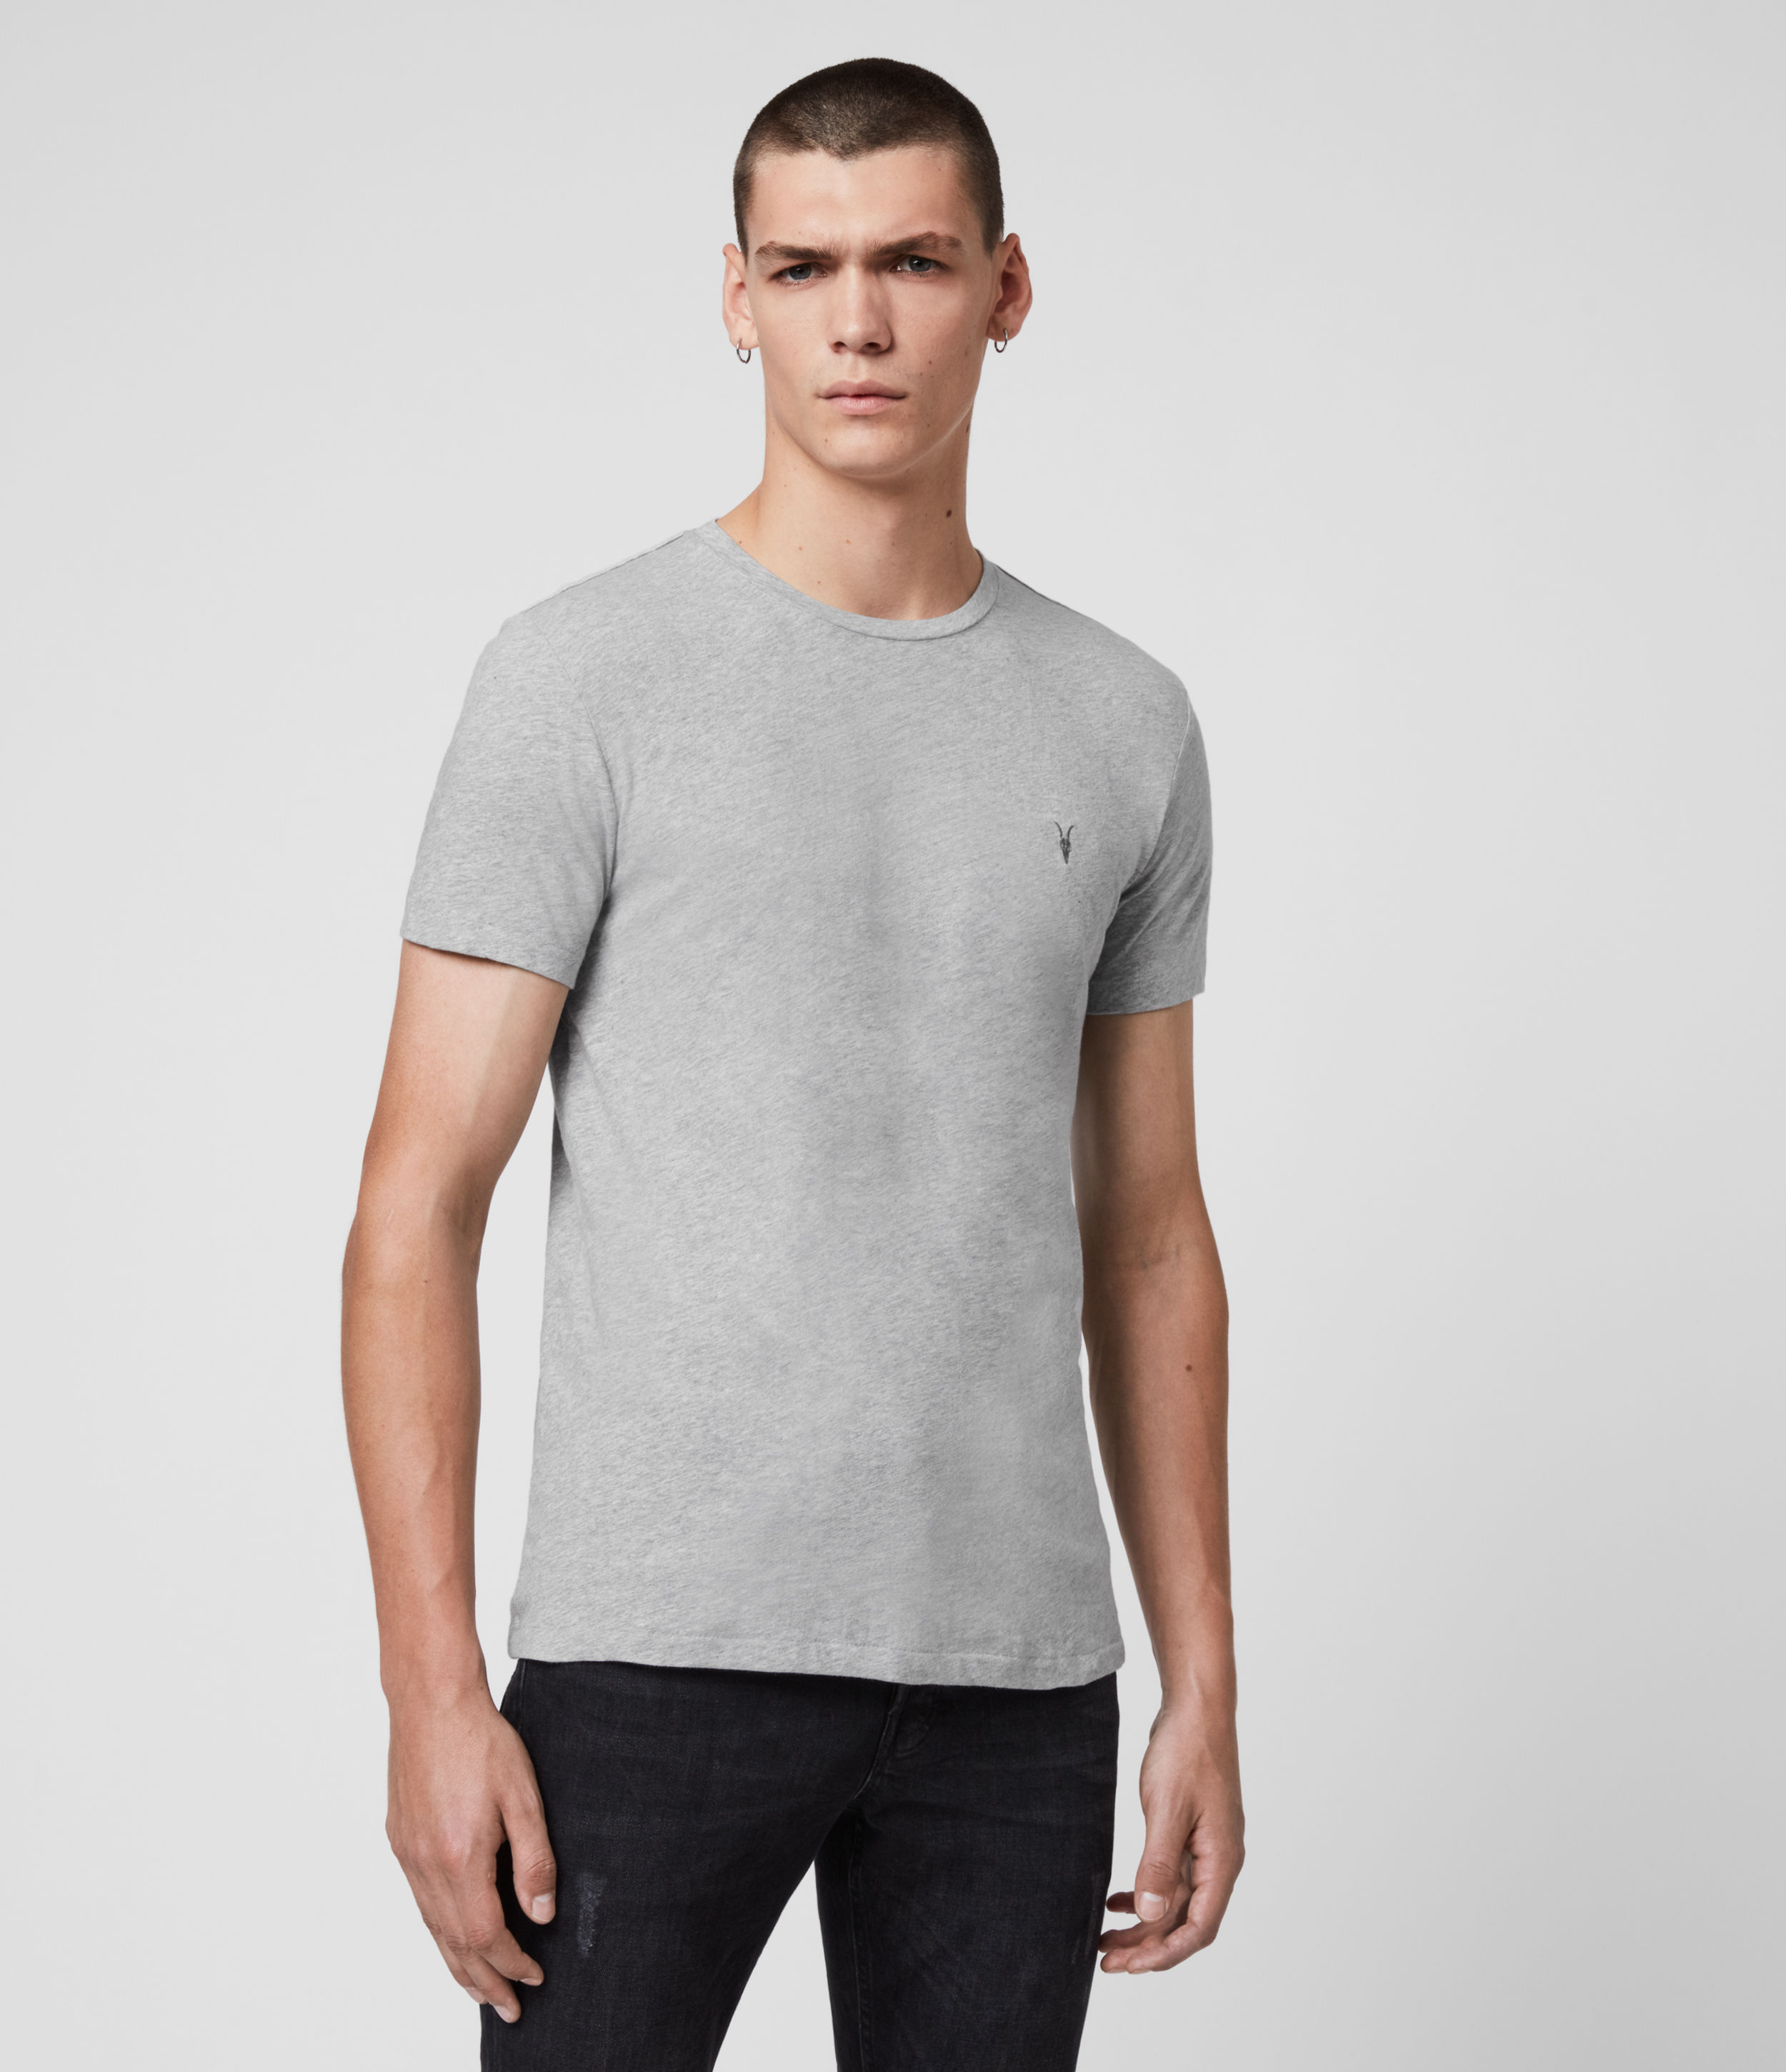 AllSaints Men's Cotton Regular Fit Tonic Crew T-Shirt, Grey, Size: XS